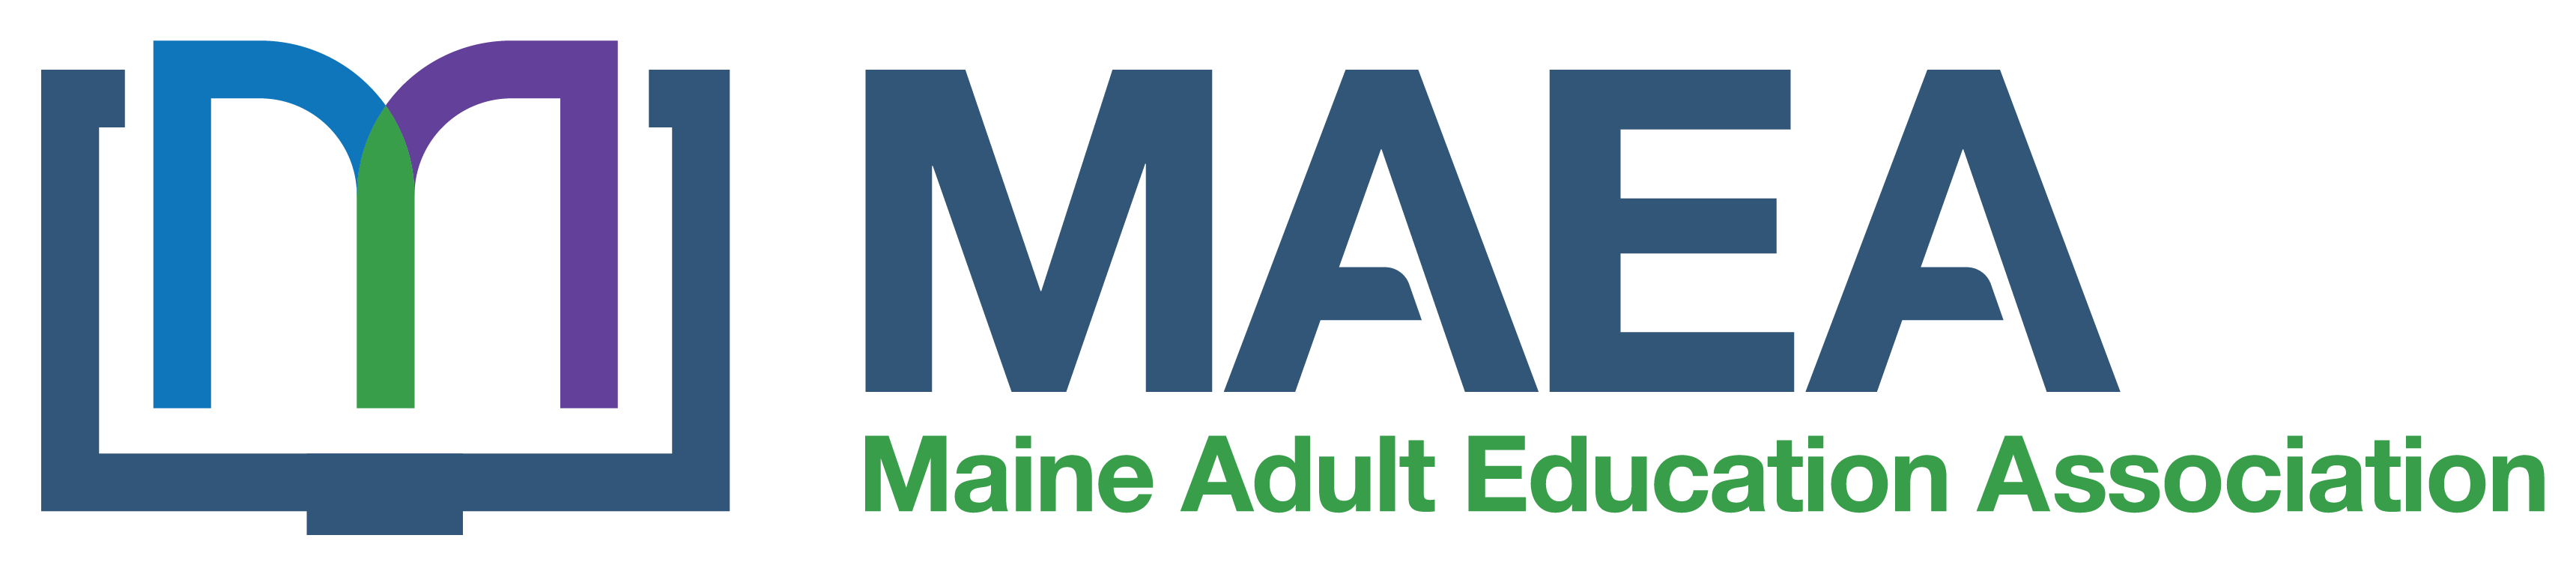 Maine Adult Education Association Logo